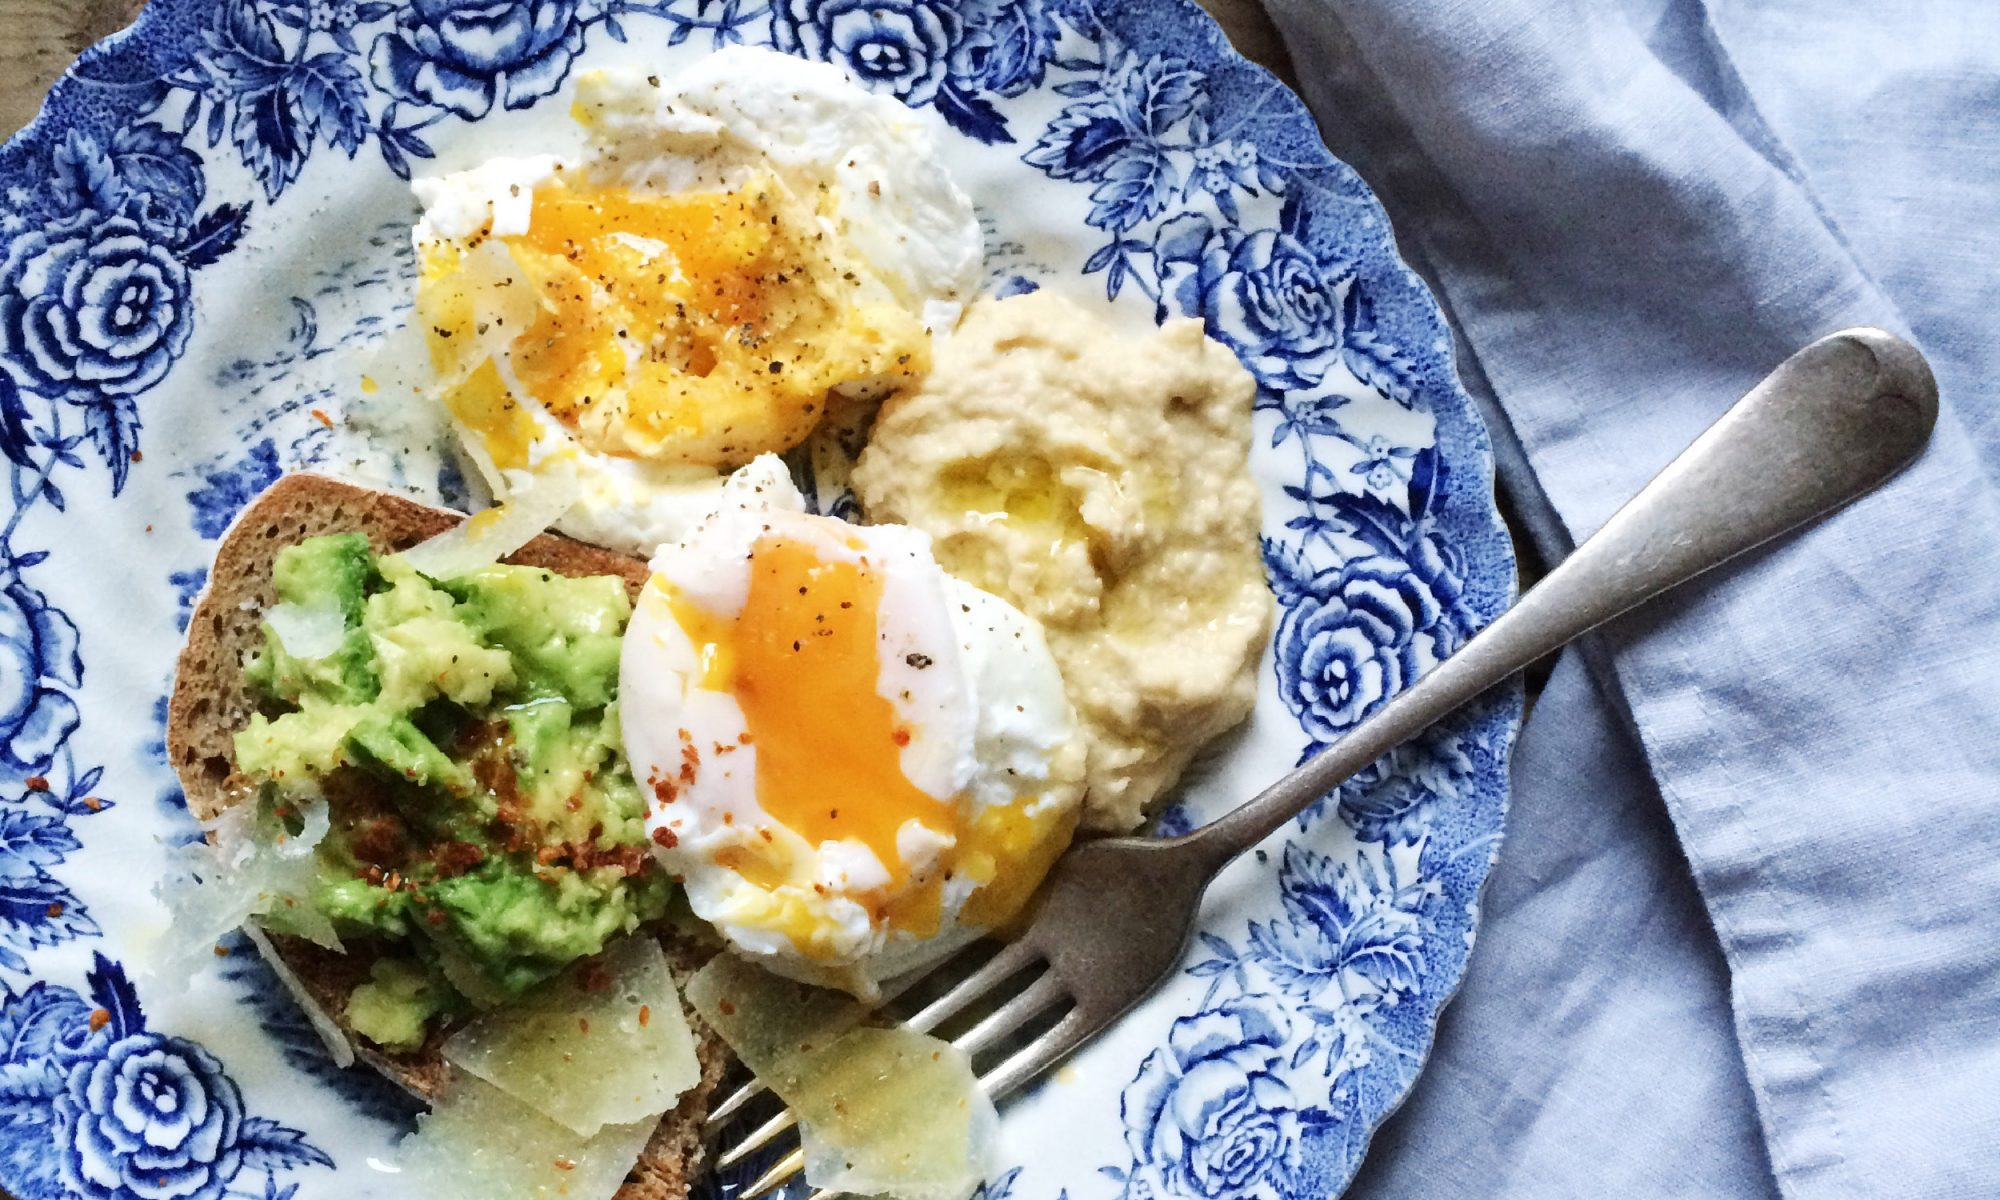 EC:  assets%2Fmessage-editor%2F1480709483509-poached-egg-plate